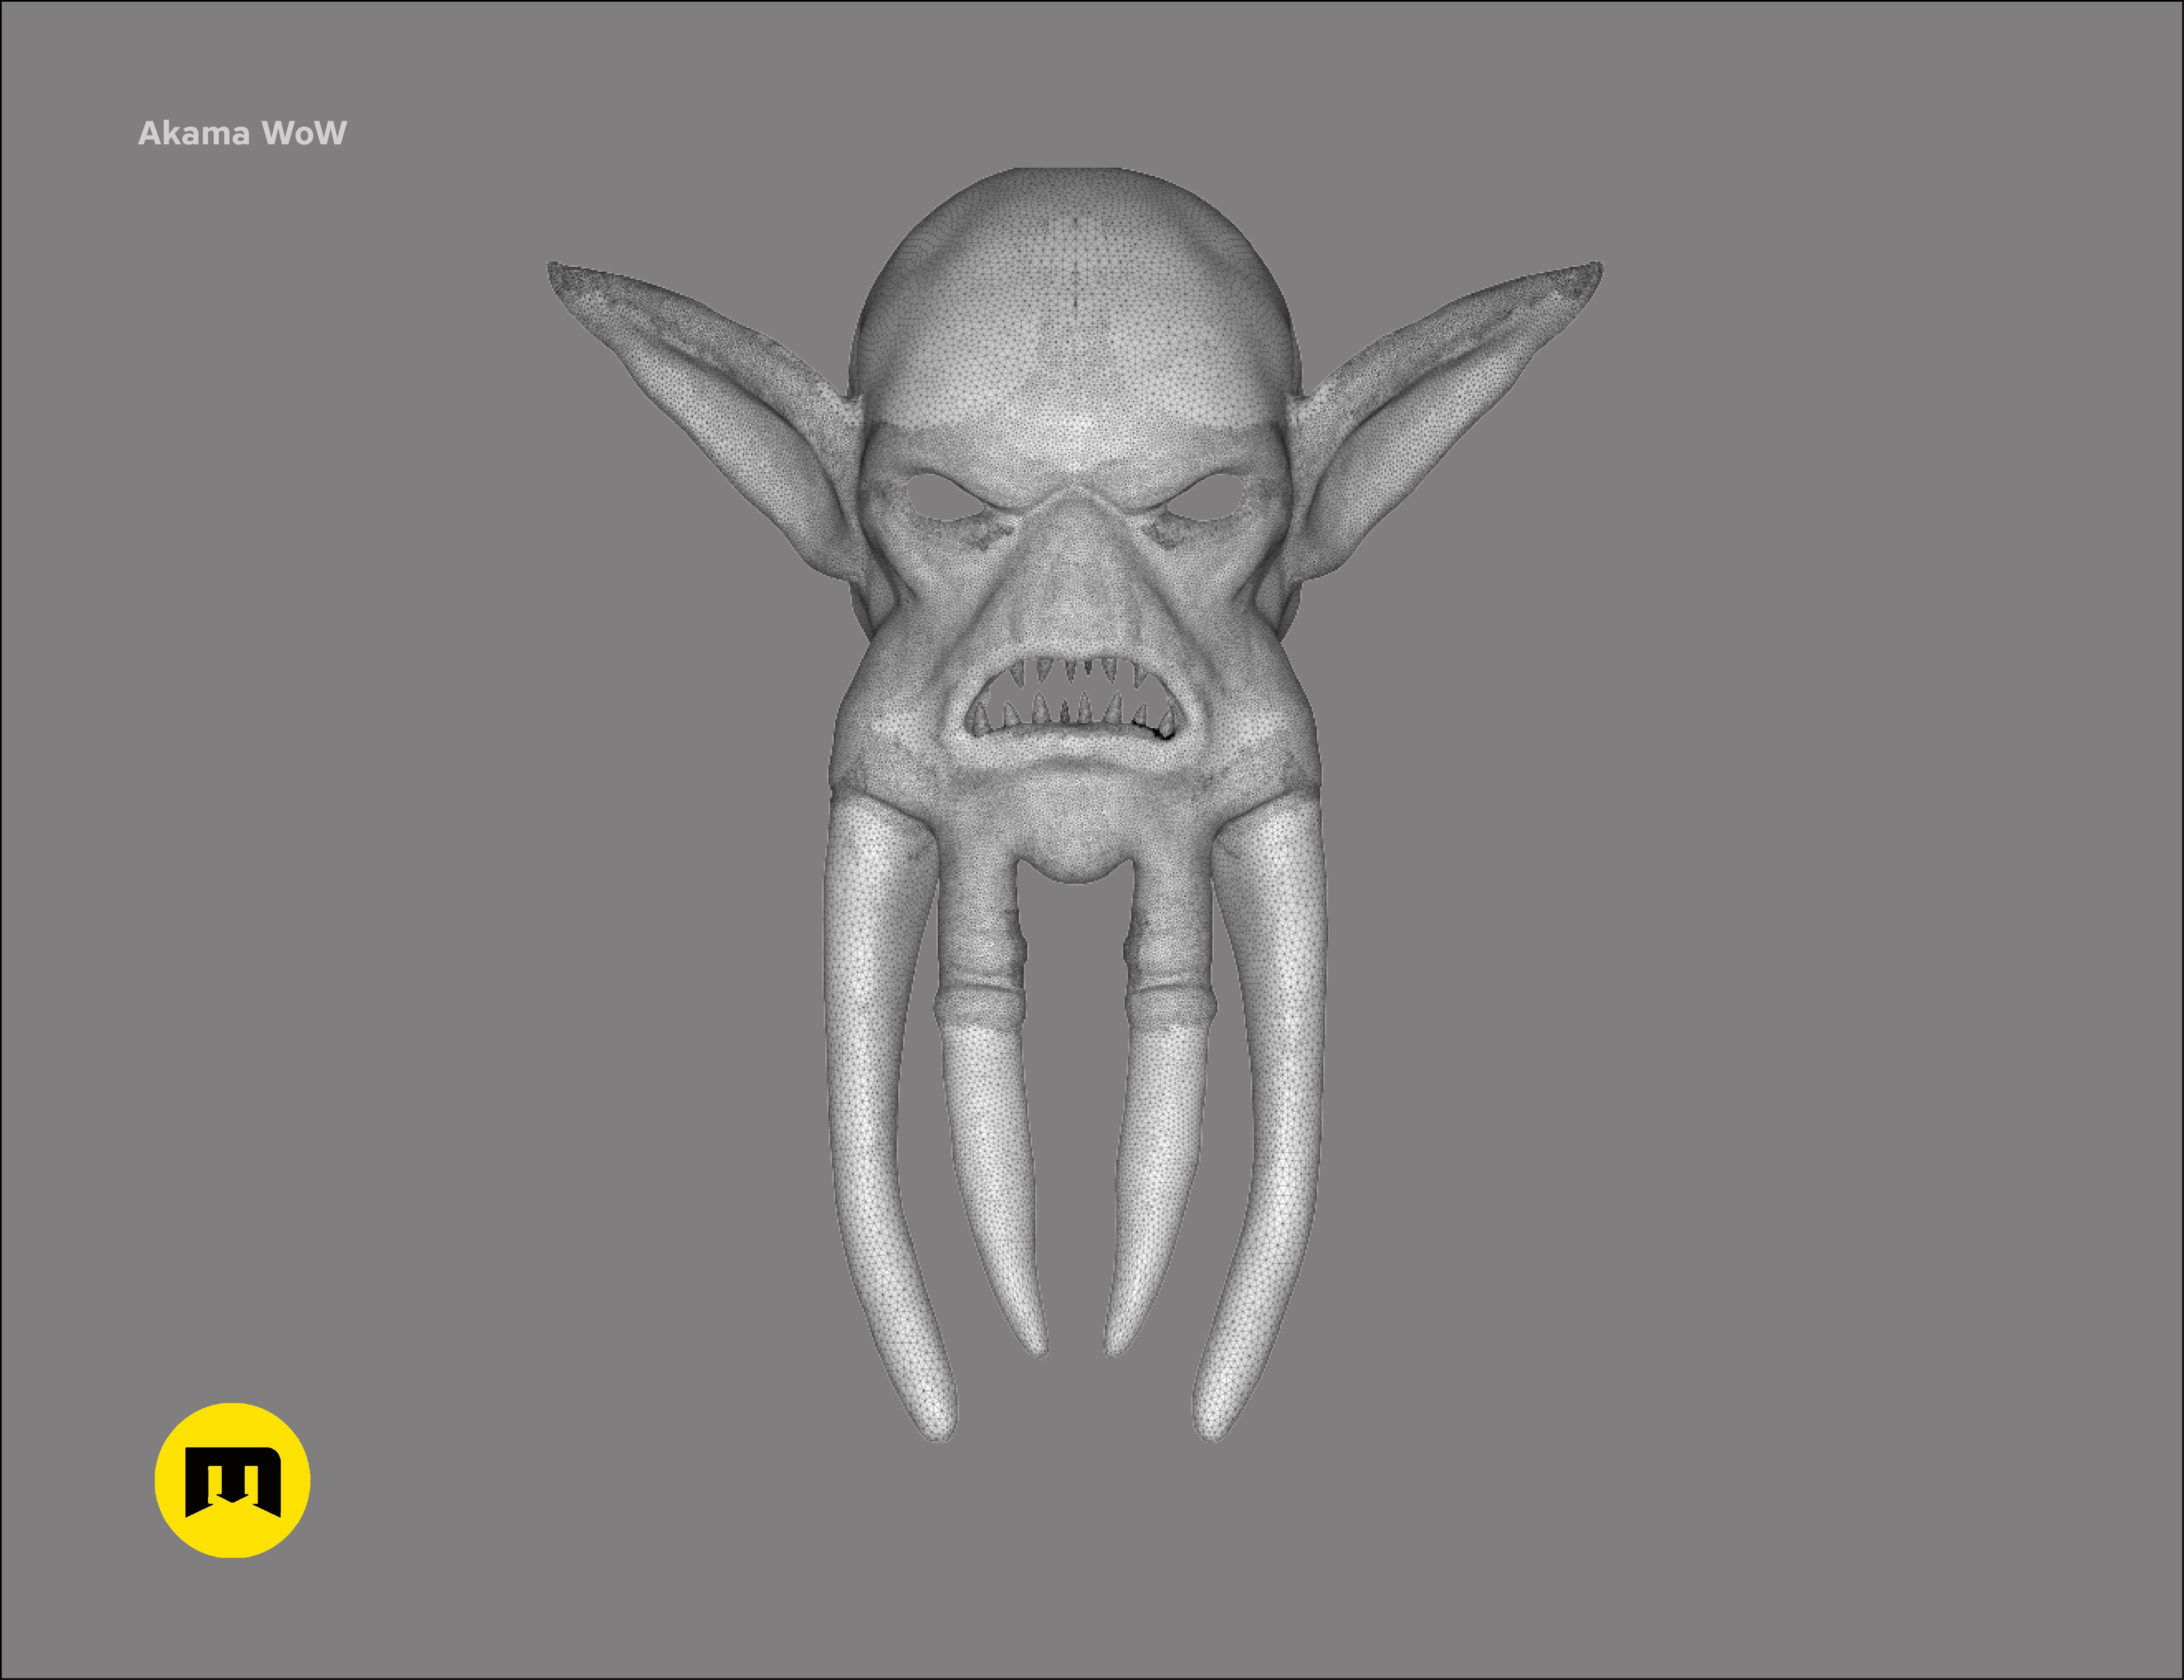 CGTrader_akama9.jpg Download STL file Mask of Akama's face from World of Warcraft • Model to 3D print, 3D-mon